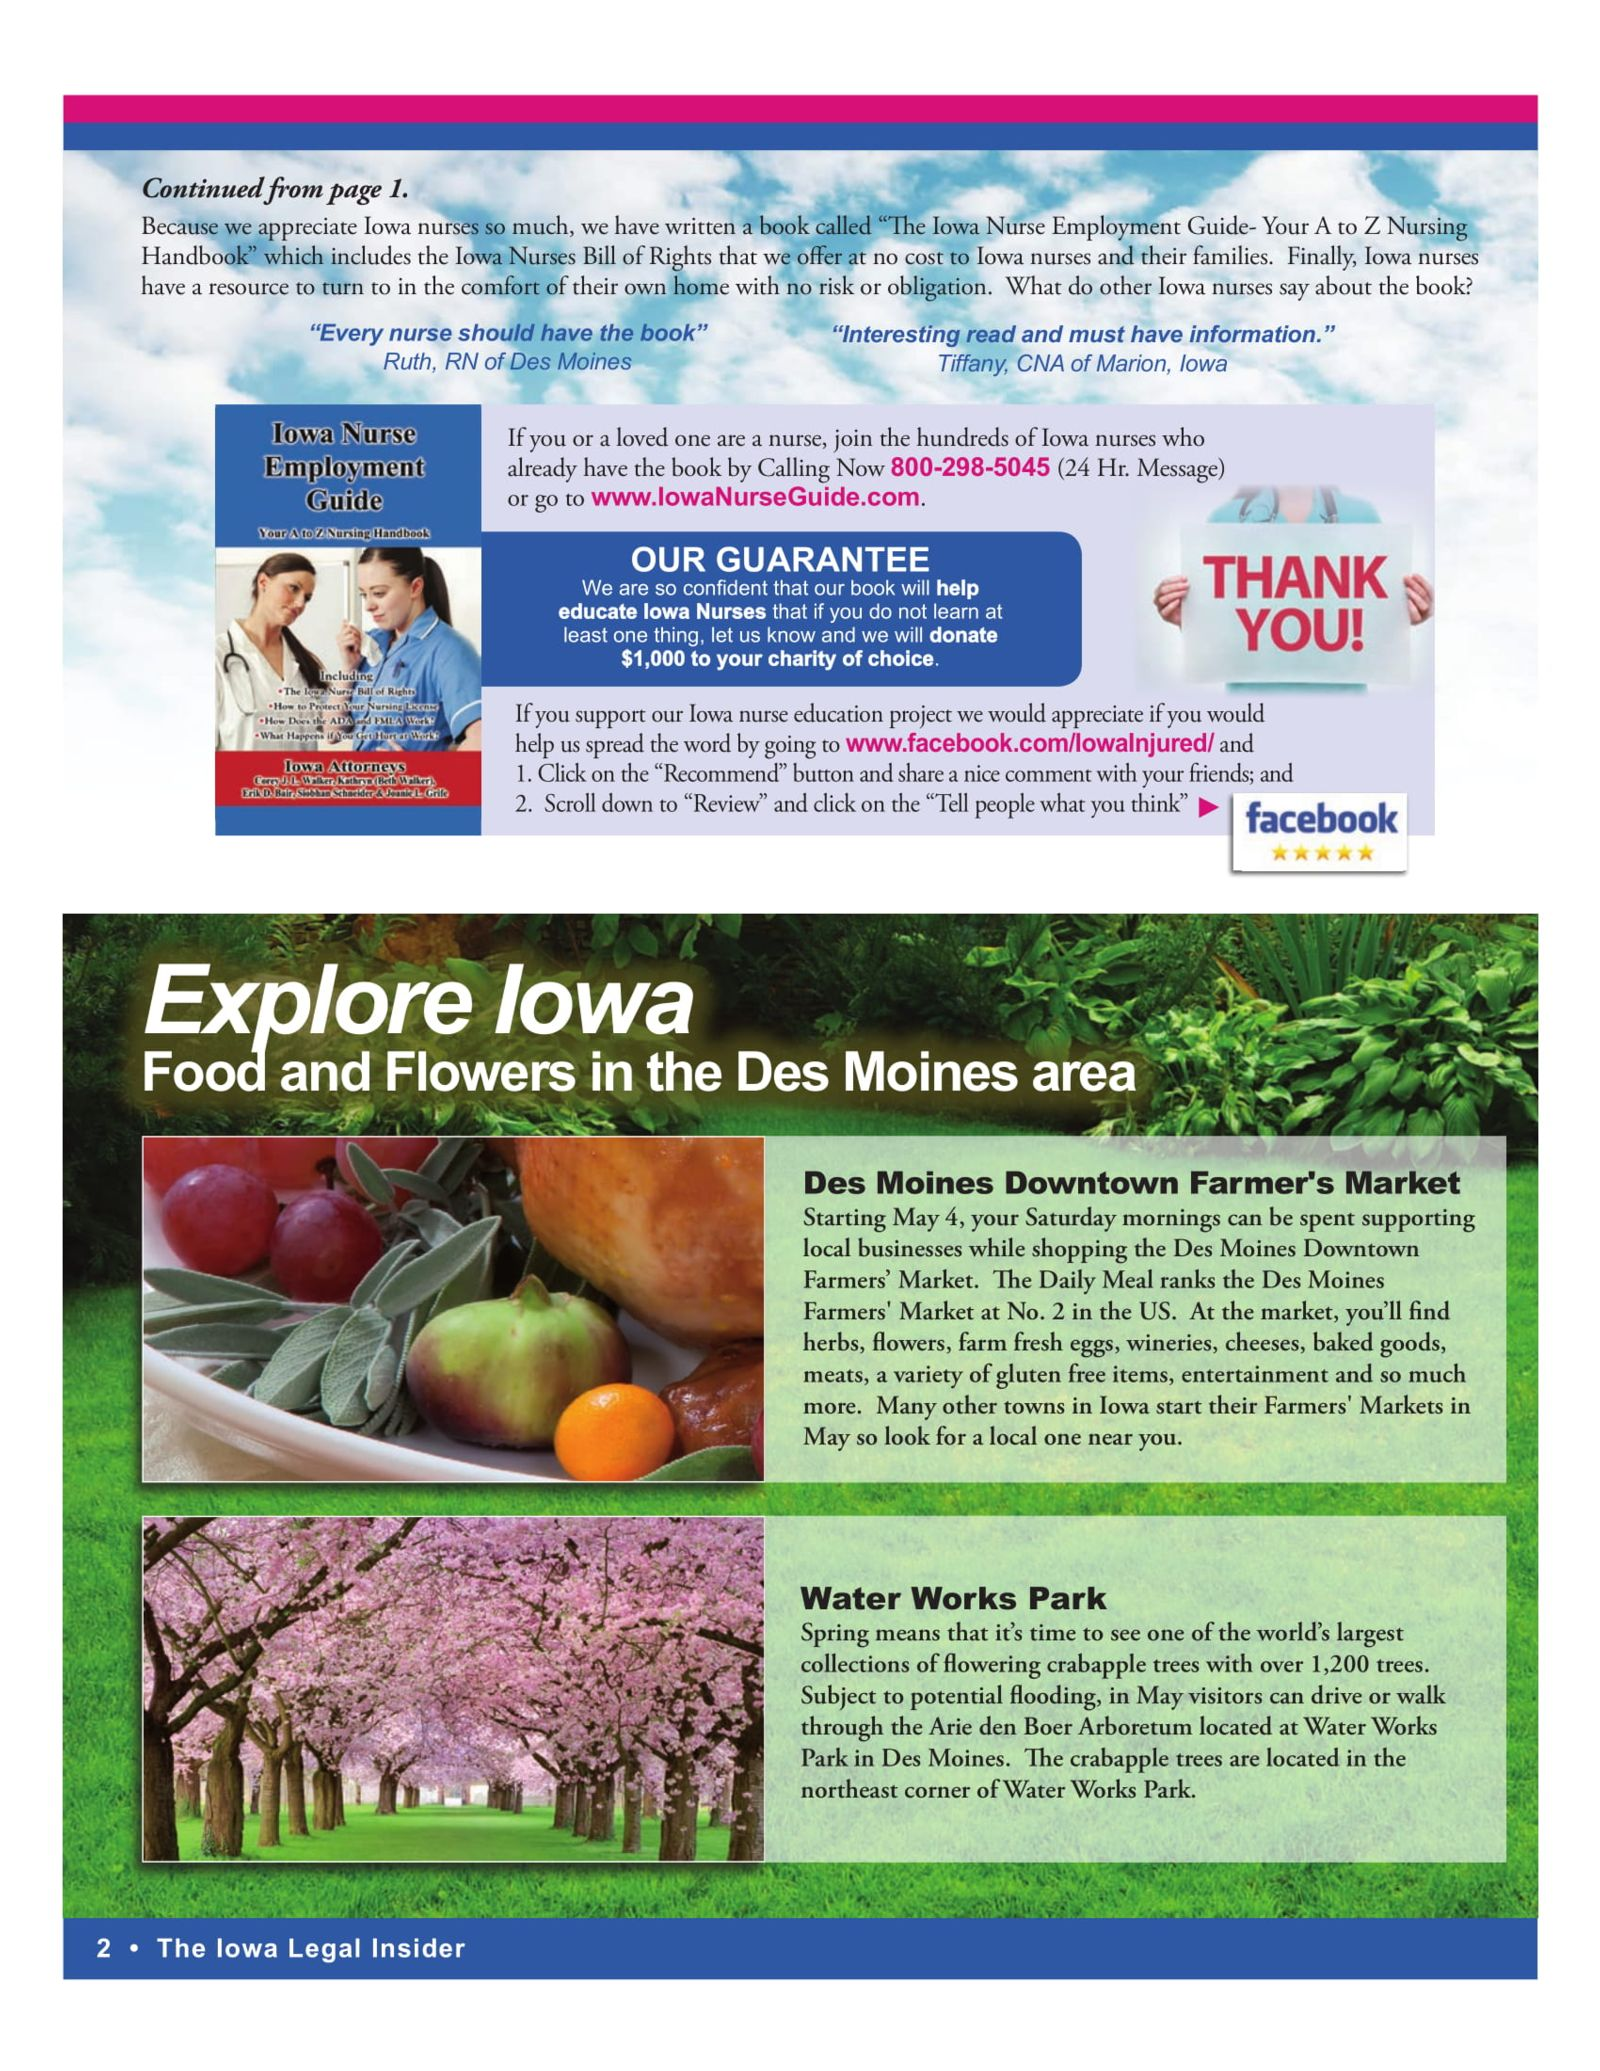 The Iowa Legal Insider Explore Des Moines